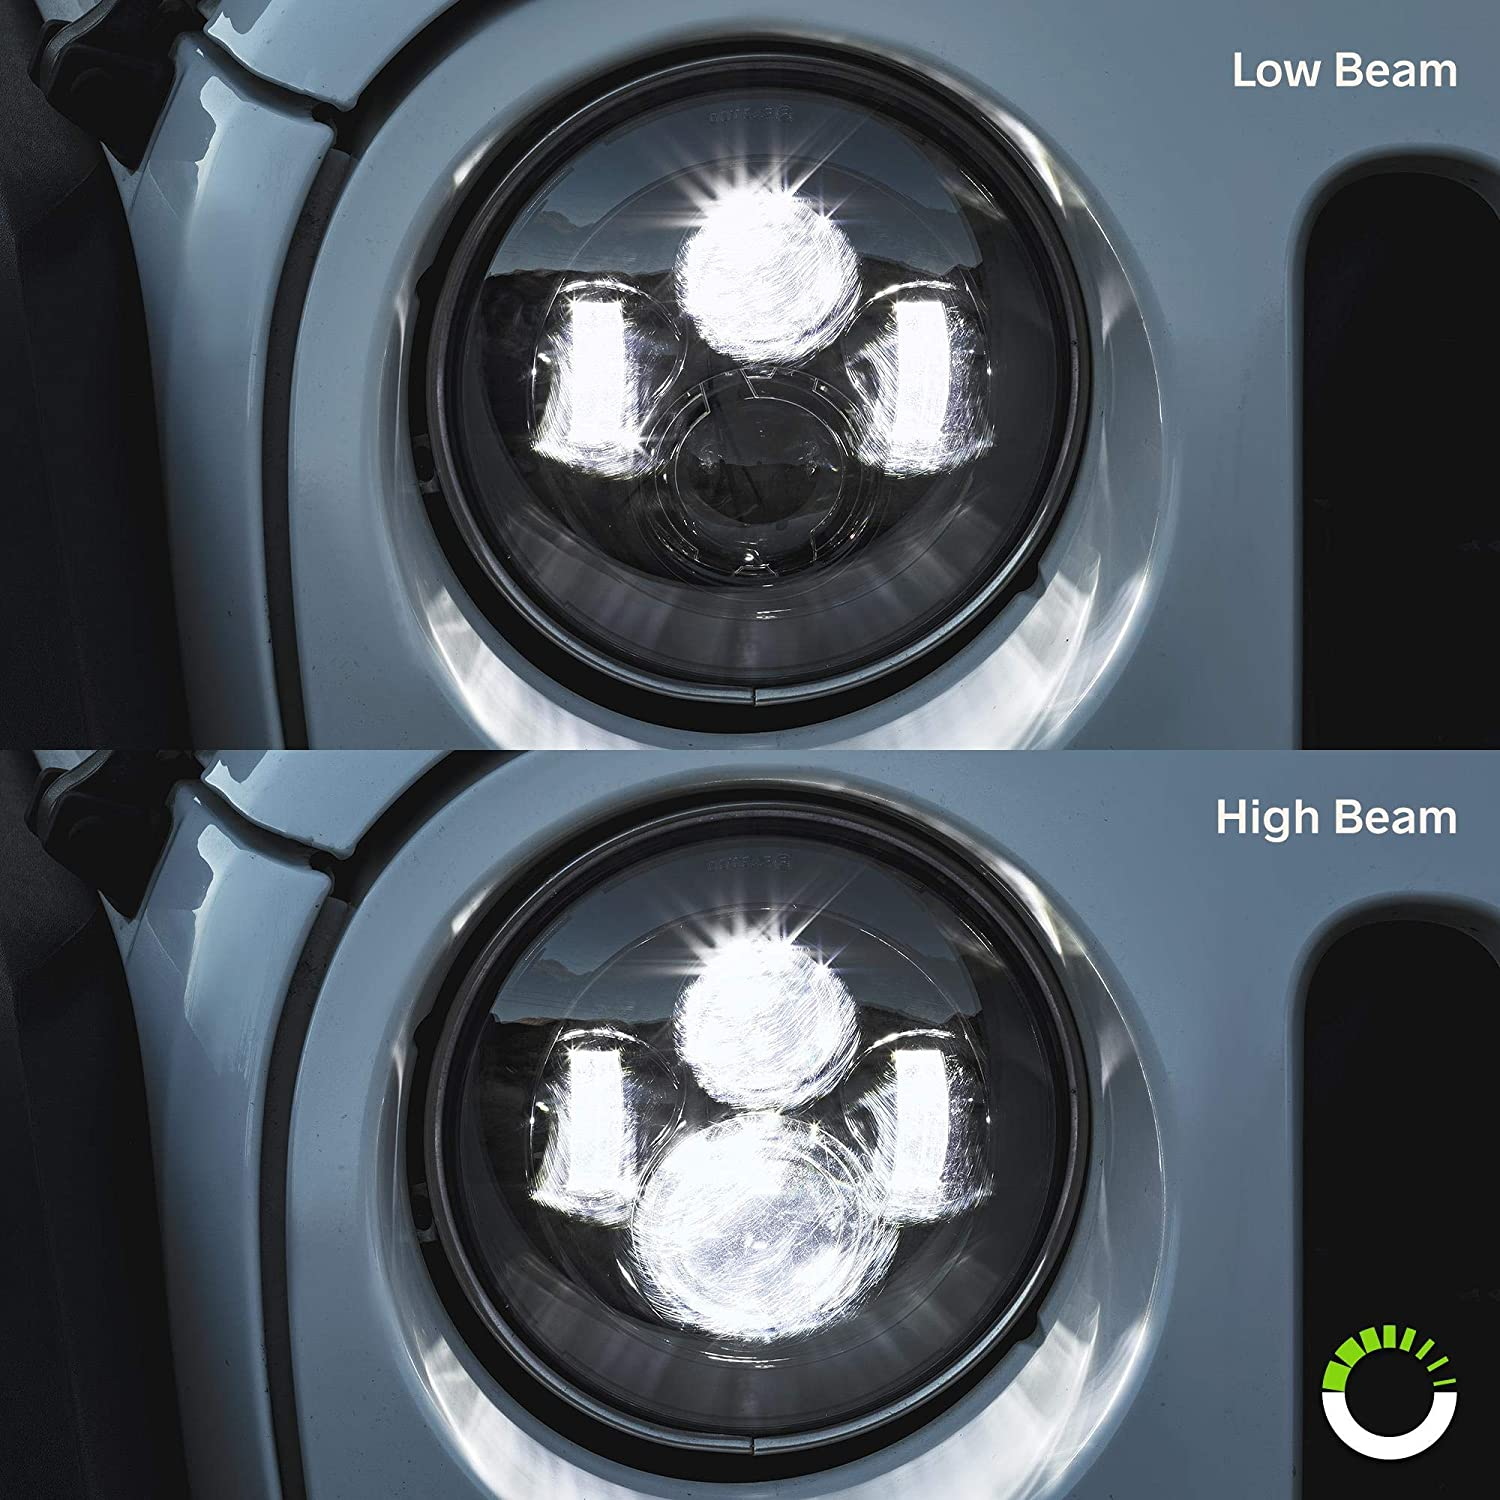 4 Fog Light - Accessories for Jeep Wrangler 1987-2018 Head Light Built-In CAN Bus HALO DRL + Turn Signal H4 Plug 7 Round CREE LED Headlights for Jeep Wrangler JK TJ LC CJ